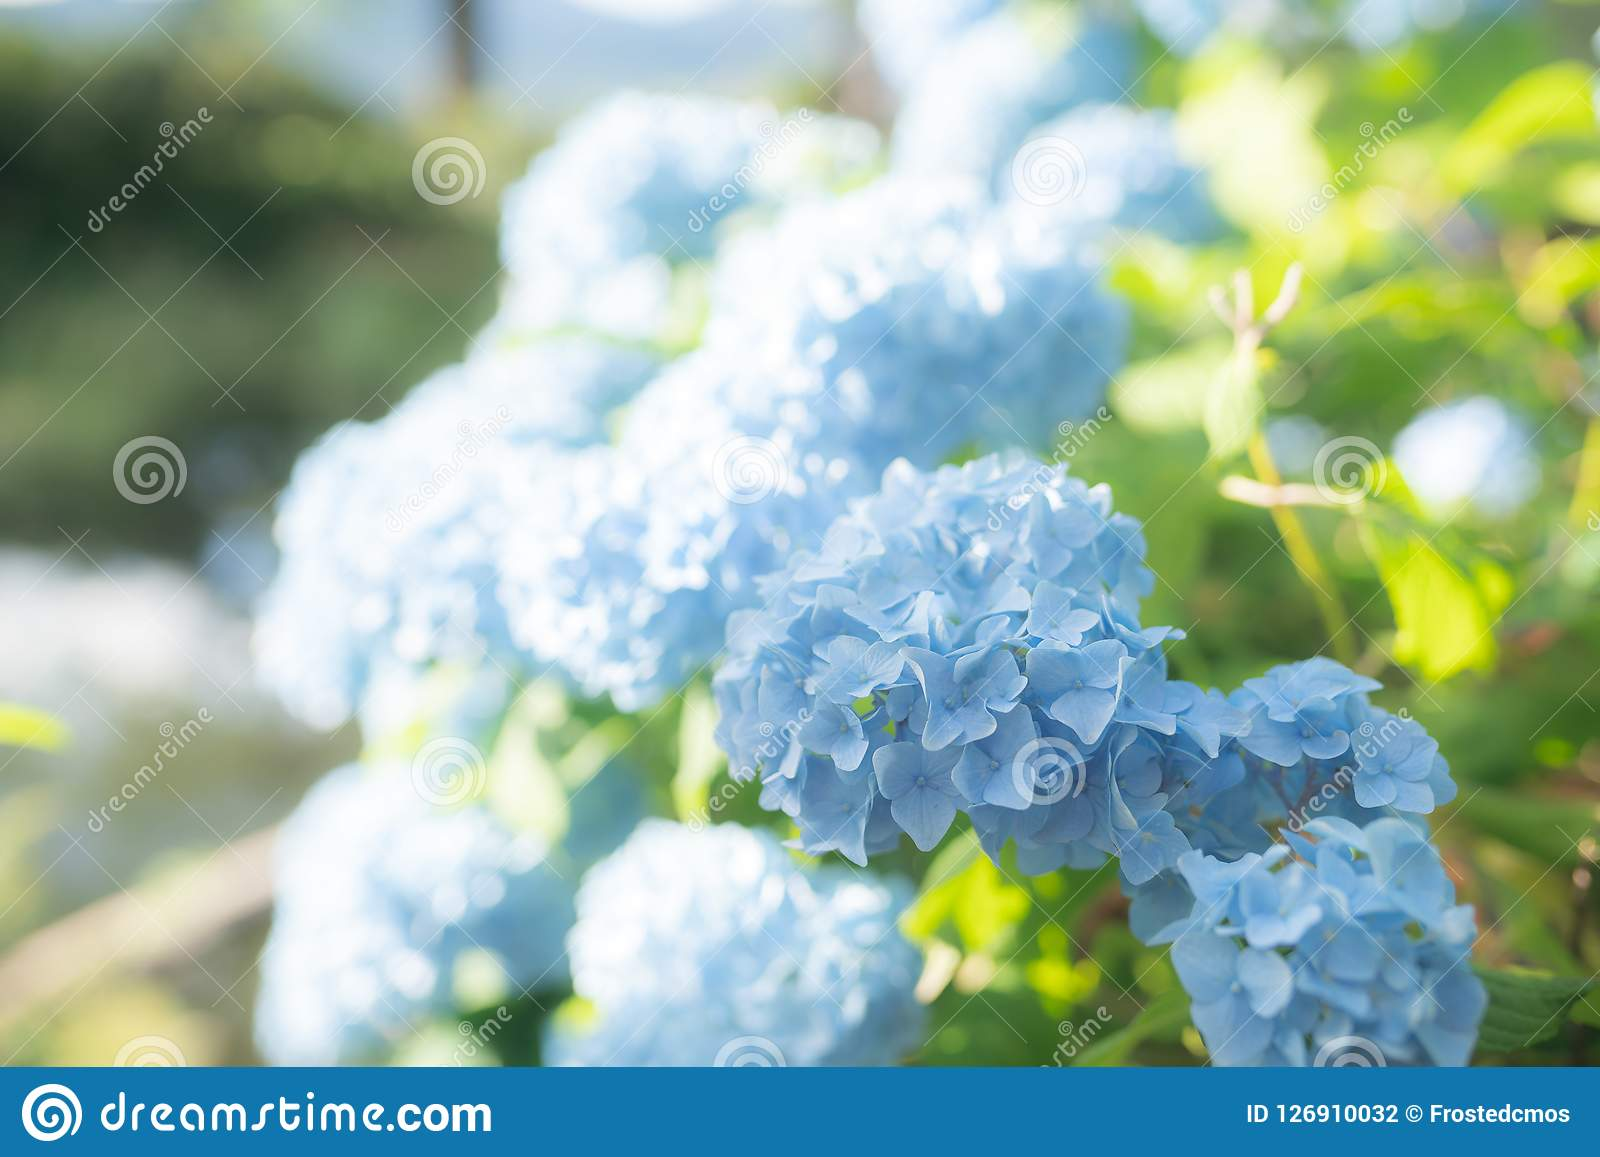 Blue hydrangea flower bush stock photo image of elegant 126910032 blue hydrangea flower bush izmirmasajfo